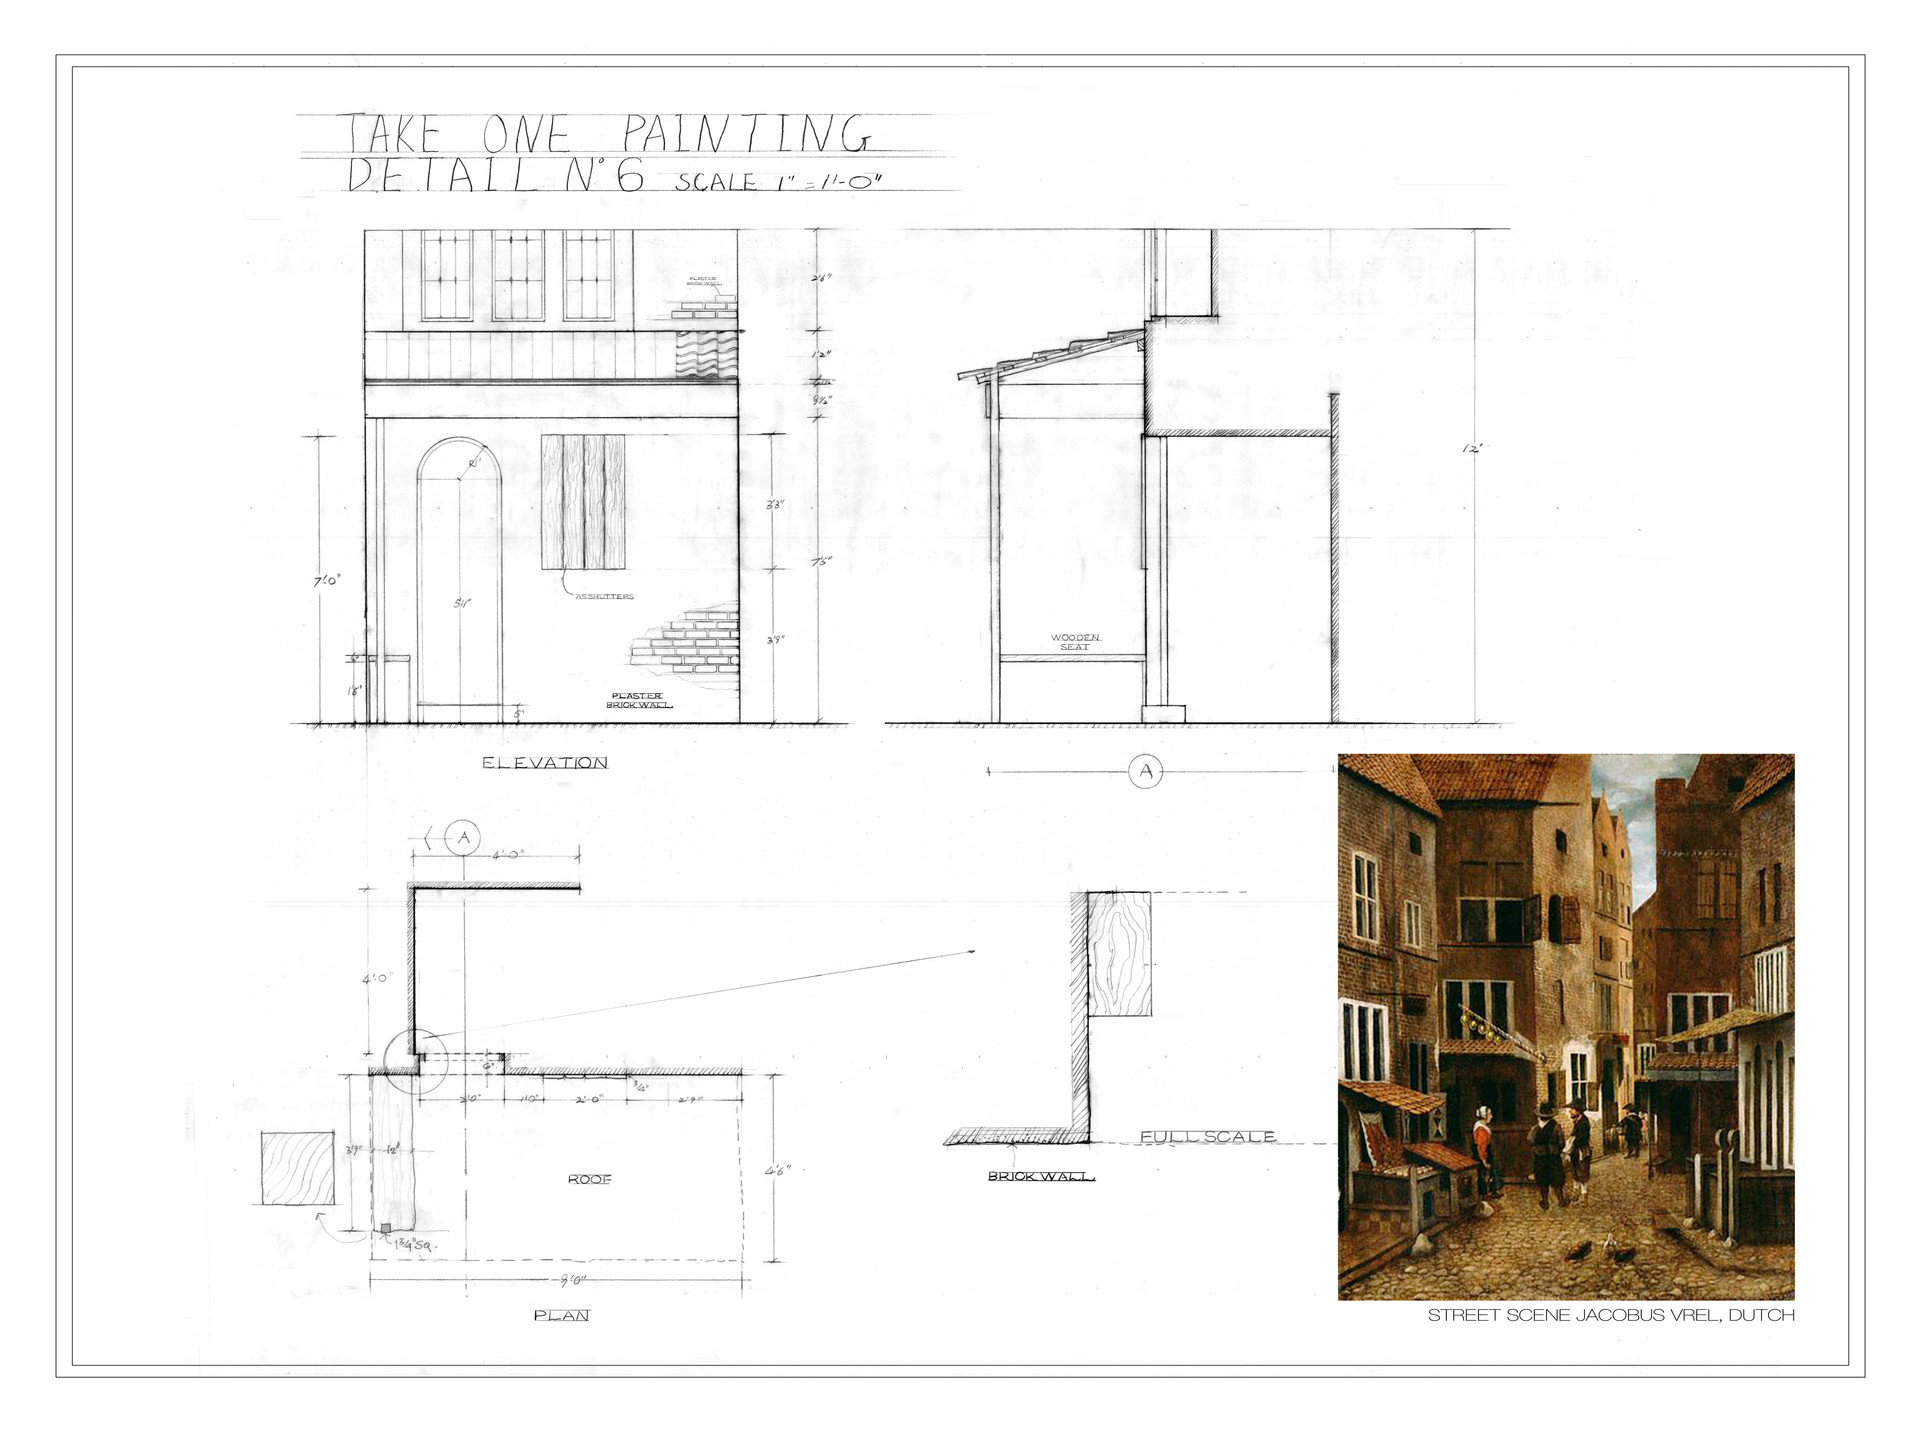 take one painting technical drawings-Fwi